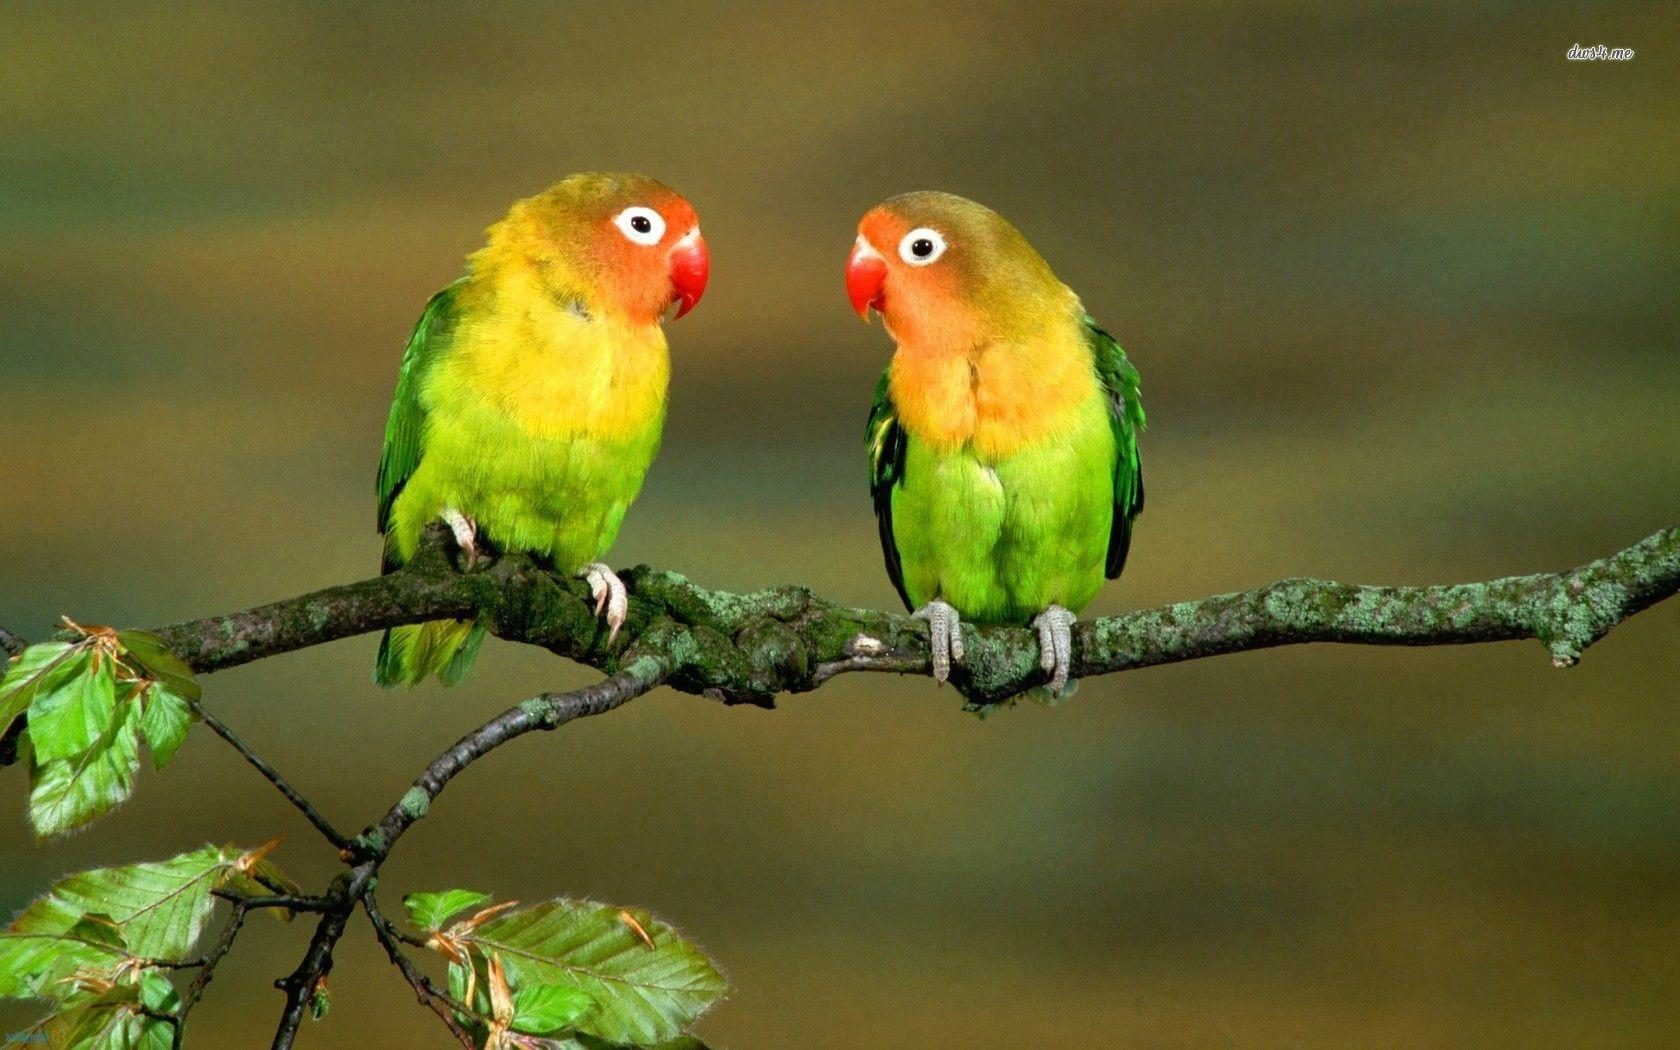 Love Birds Wallpaper For Mobile : Lovebirds Wallpapers - Wallpaper cave